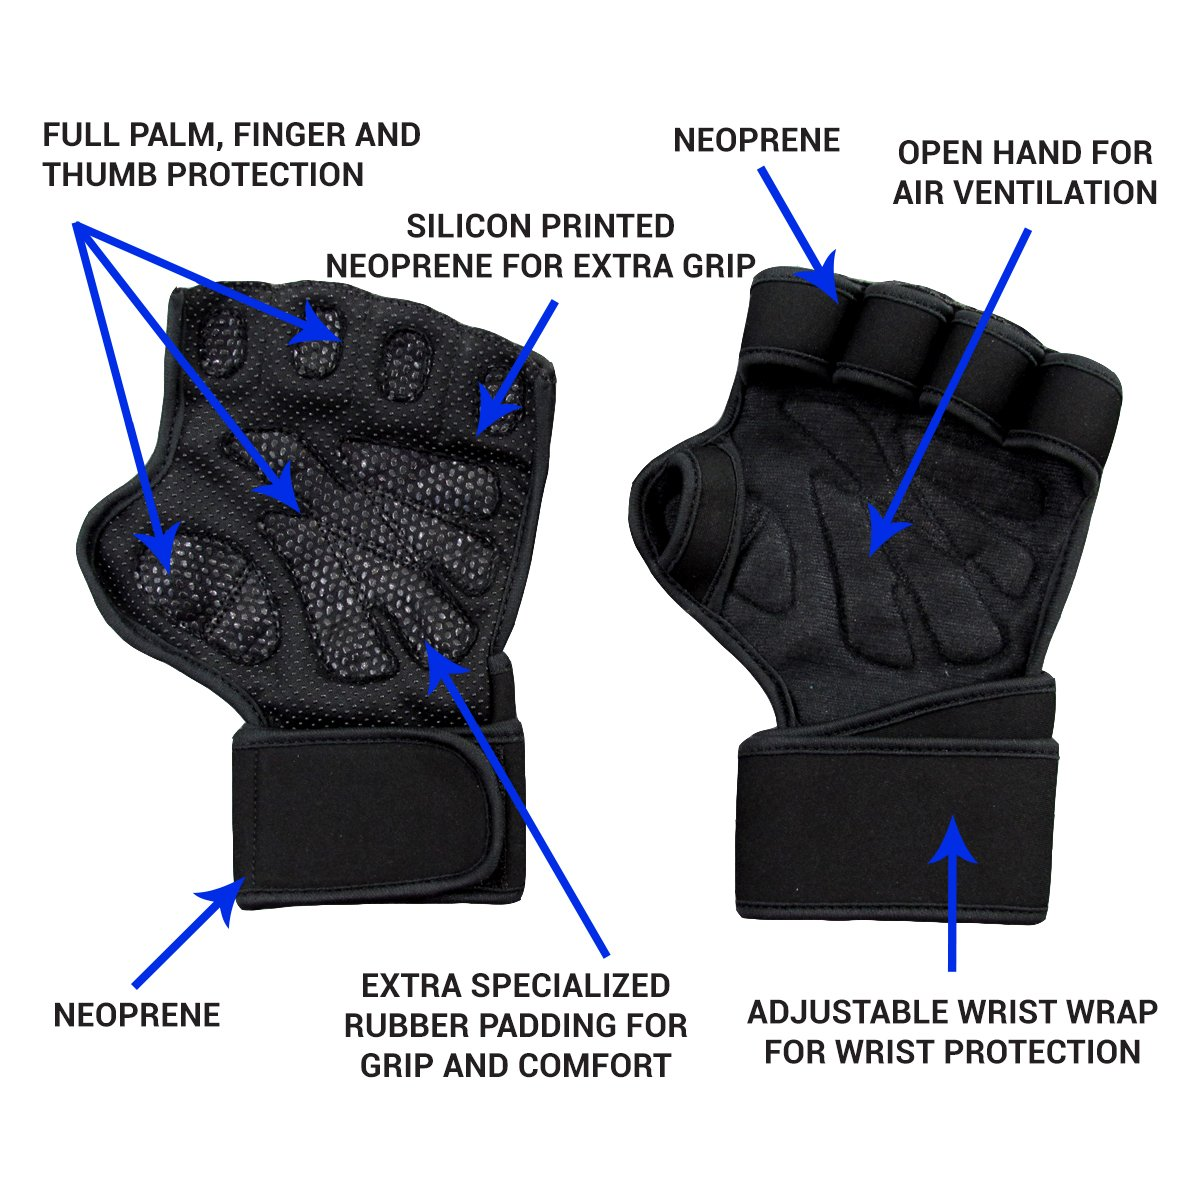 Motorcycle gloves palm protection - Amazon Com New Ventilated Weight Lifting Gloves With Built In Wrist Wraps Full Palm Protection Extra Grip Great For Pull Ups Cross Training Fitness